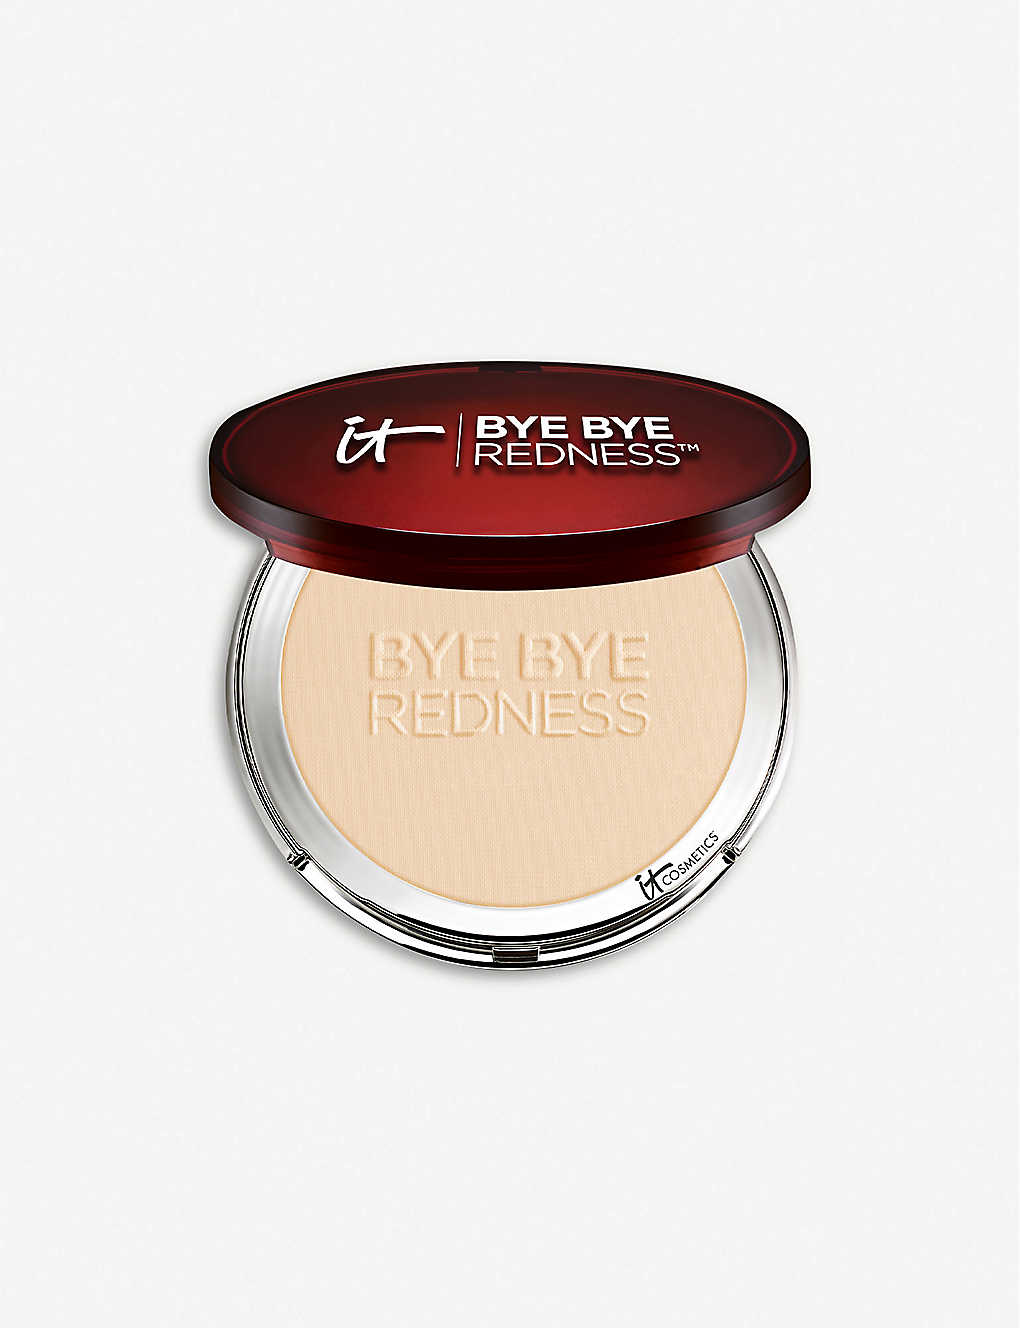 IT COSMETICS: Bye Bye Redness Powder 9.36g